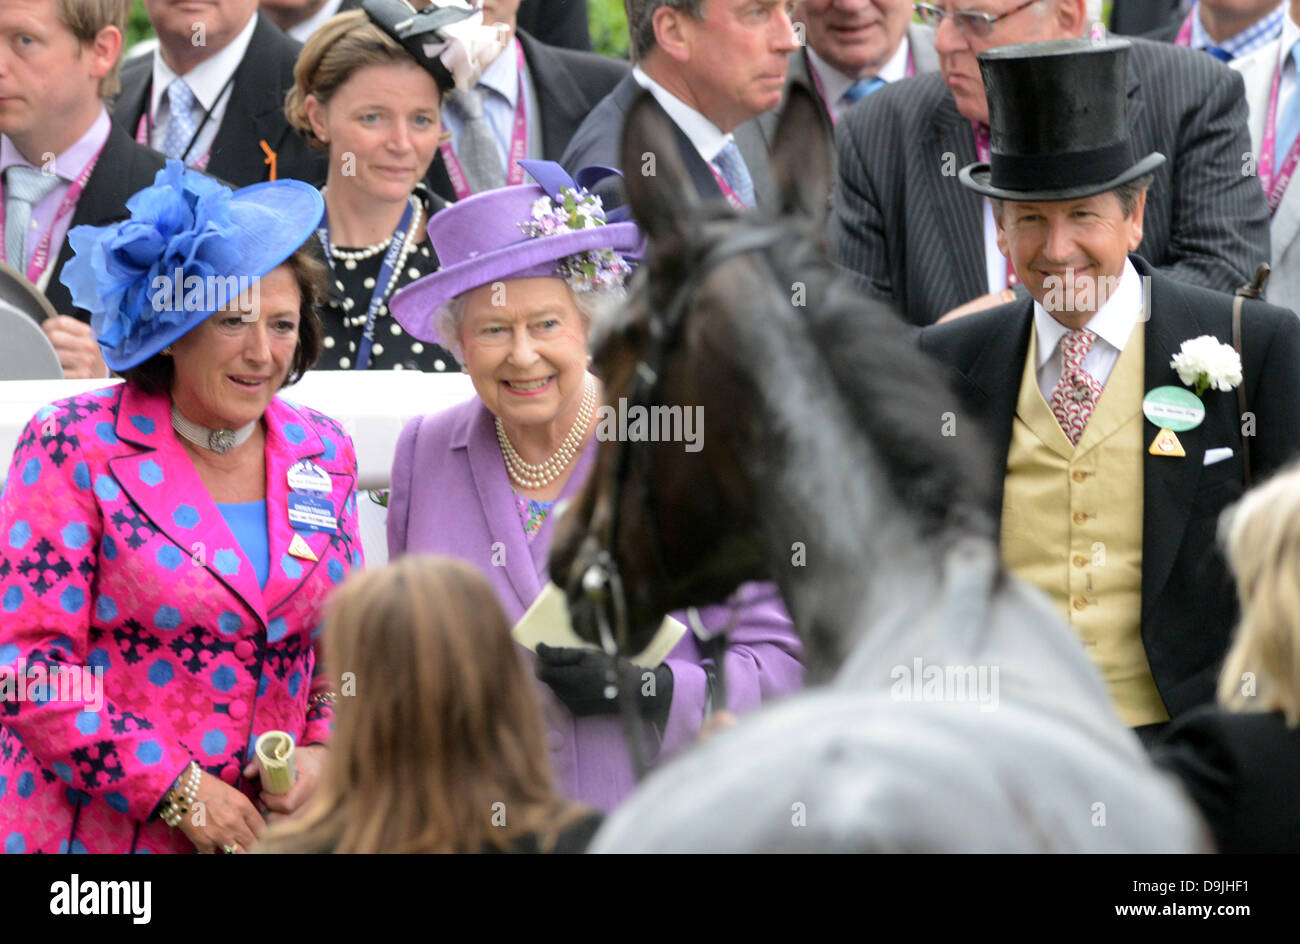 Ascot, Berkshire, UK. 20th June 2013.  HM Queen with her winner Estimate after the Gold Cup on Ladies Day. Credit: - Stock Image